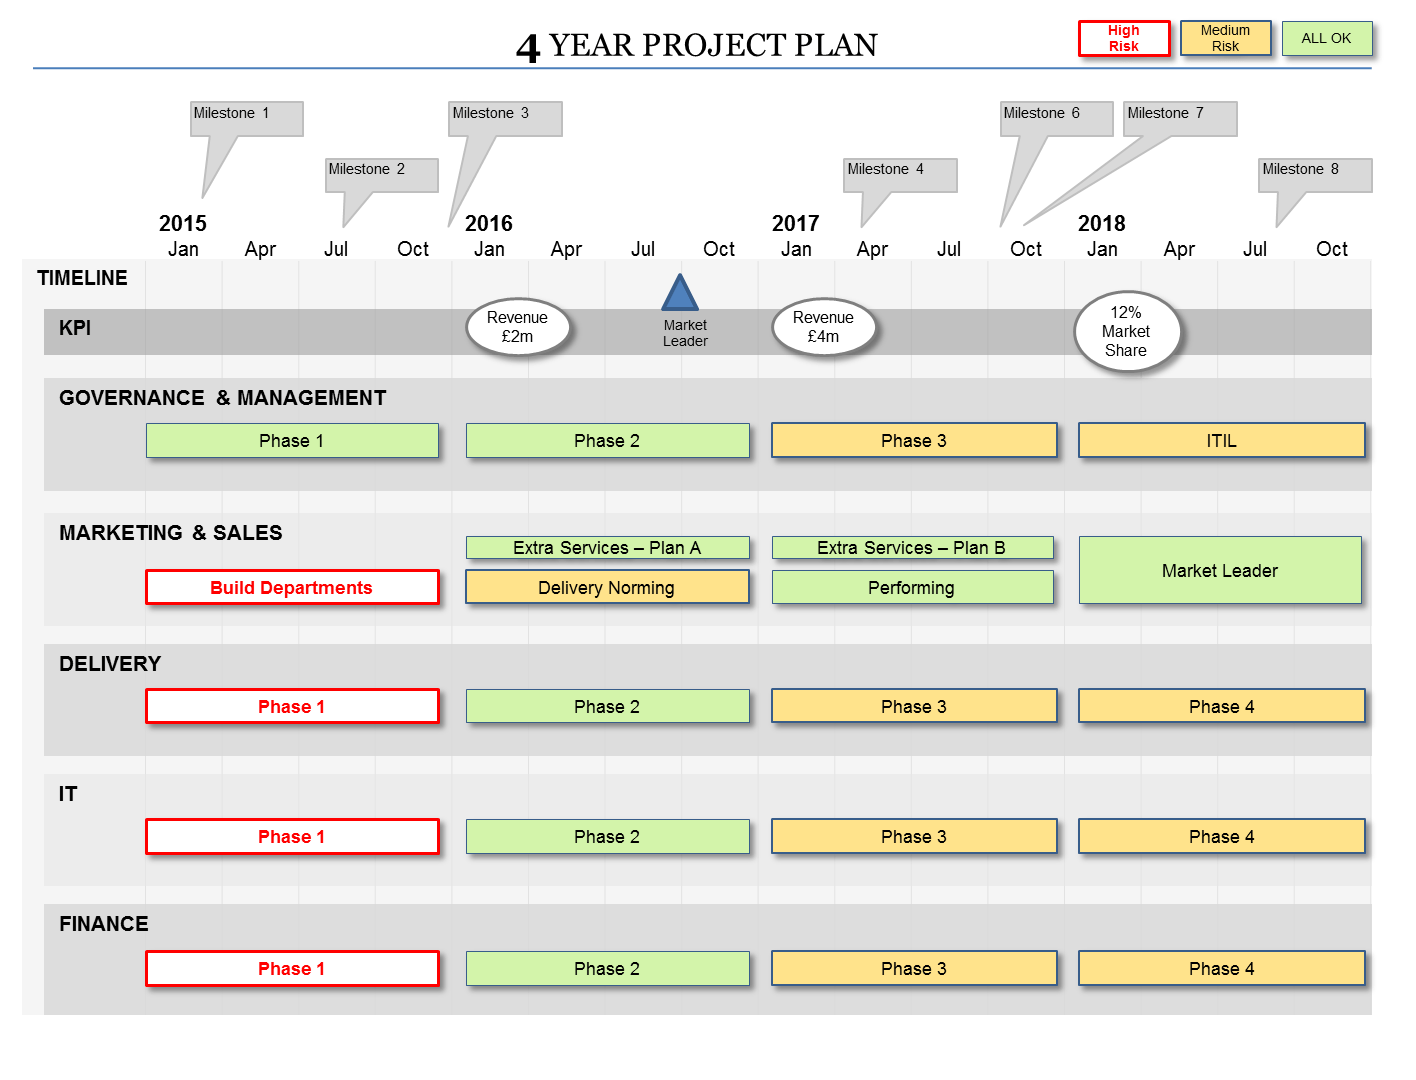 excel swim lane diagram template editable moen shower mixing valve powerpoint project plan flexible planning formats